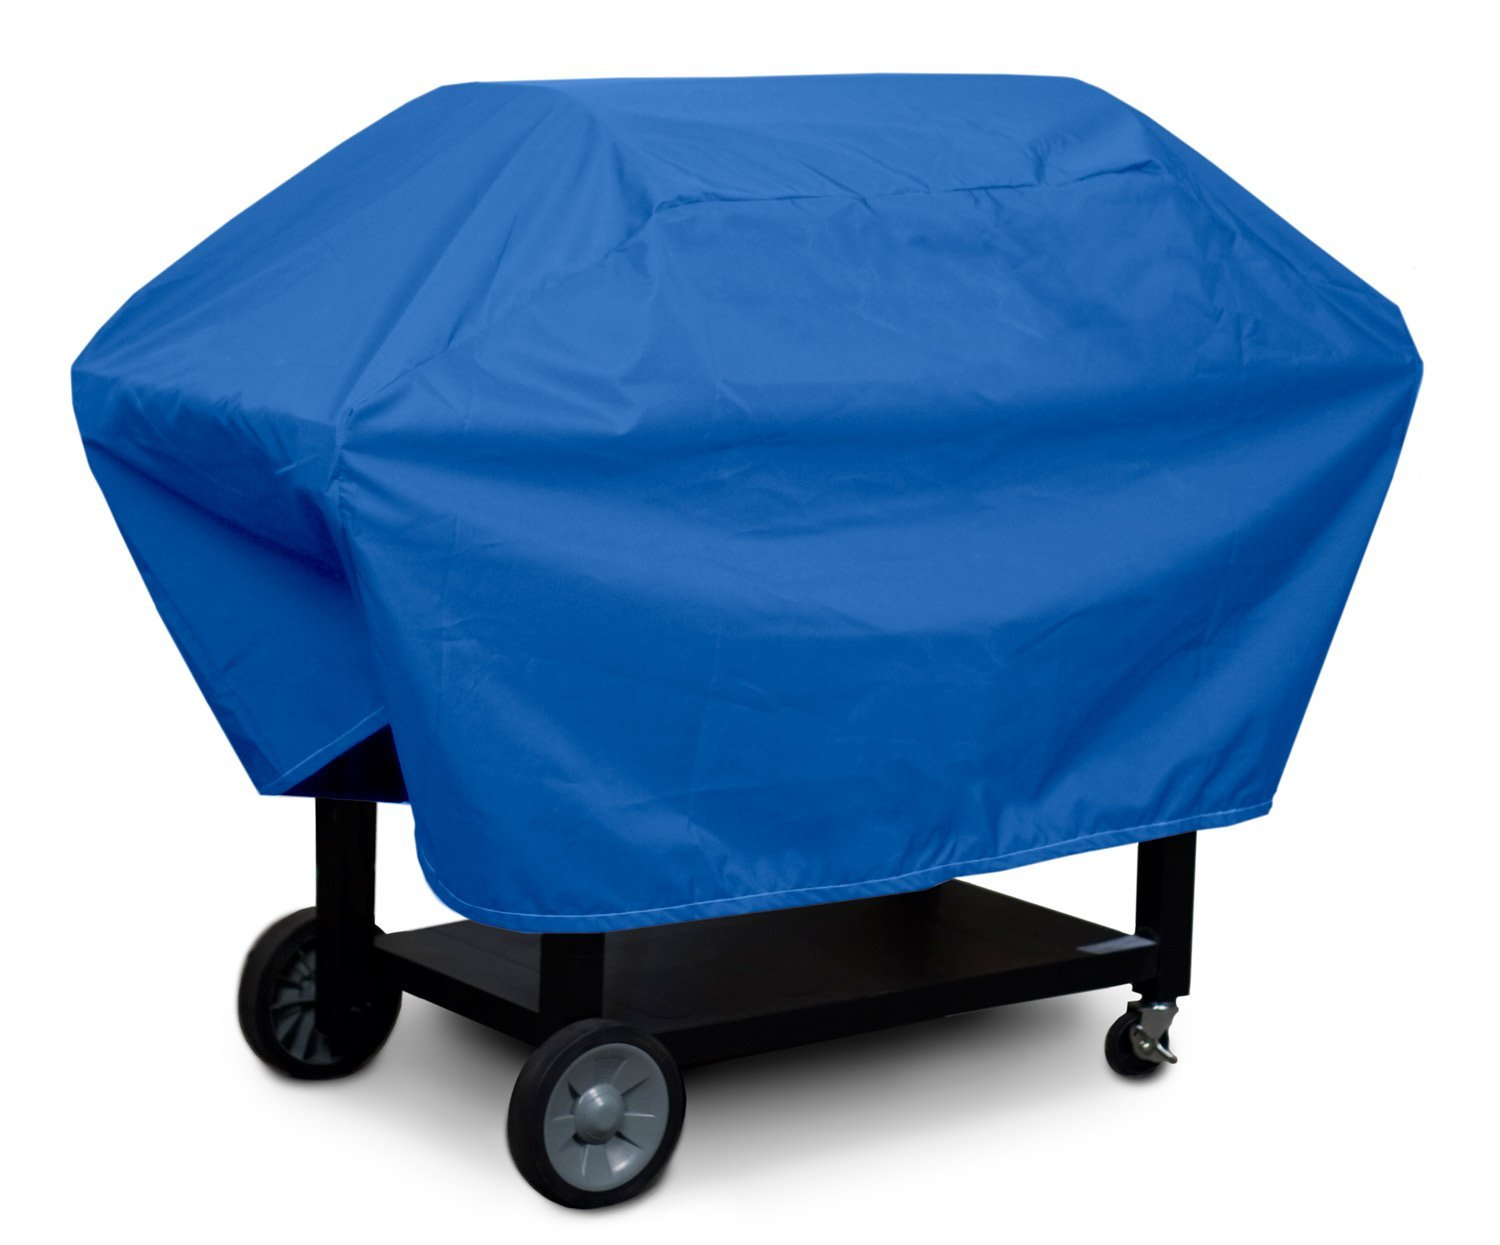 KoverRoos Weathermax 03054 X-Large Barbecue Cover, 29-Inch Diameter by 66-Inch Width by 45-Inch Height, Pacific Blue